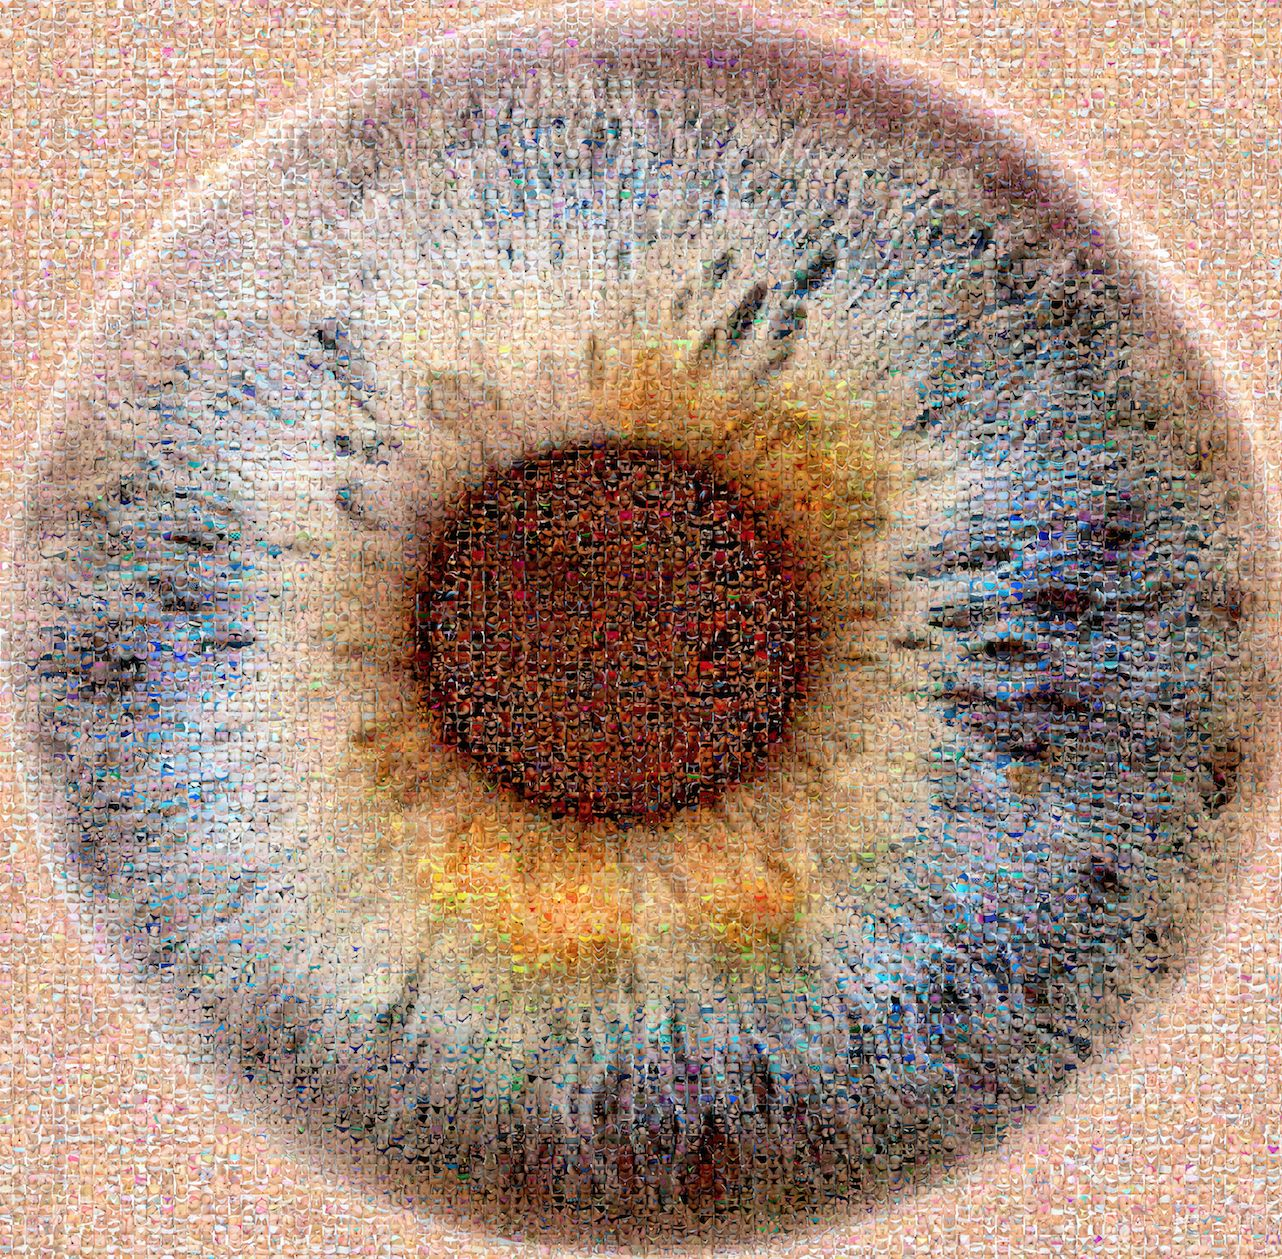 Photomosa que eye jo l moens de hase artiste belge contemporain - Design belge contemporain ...